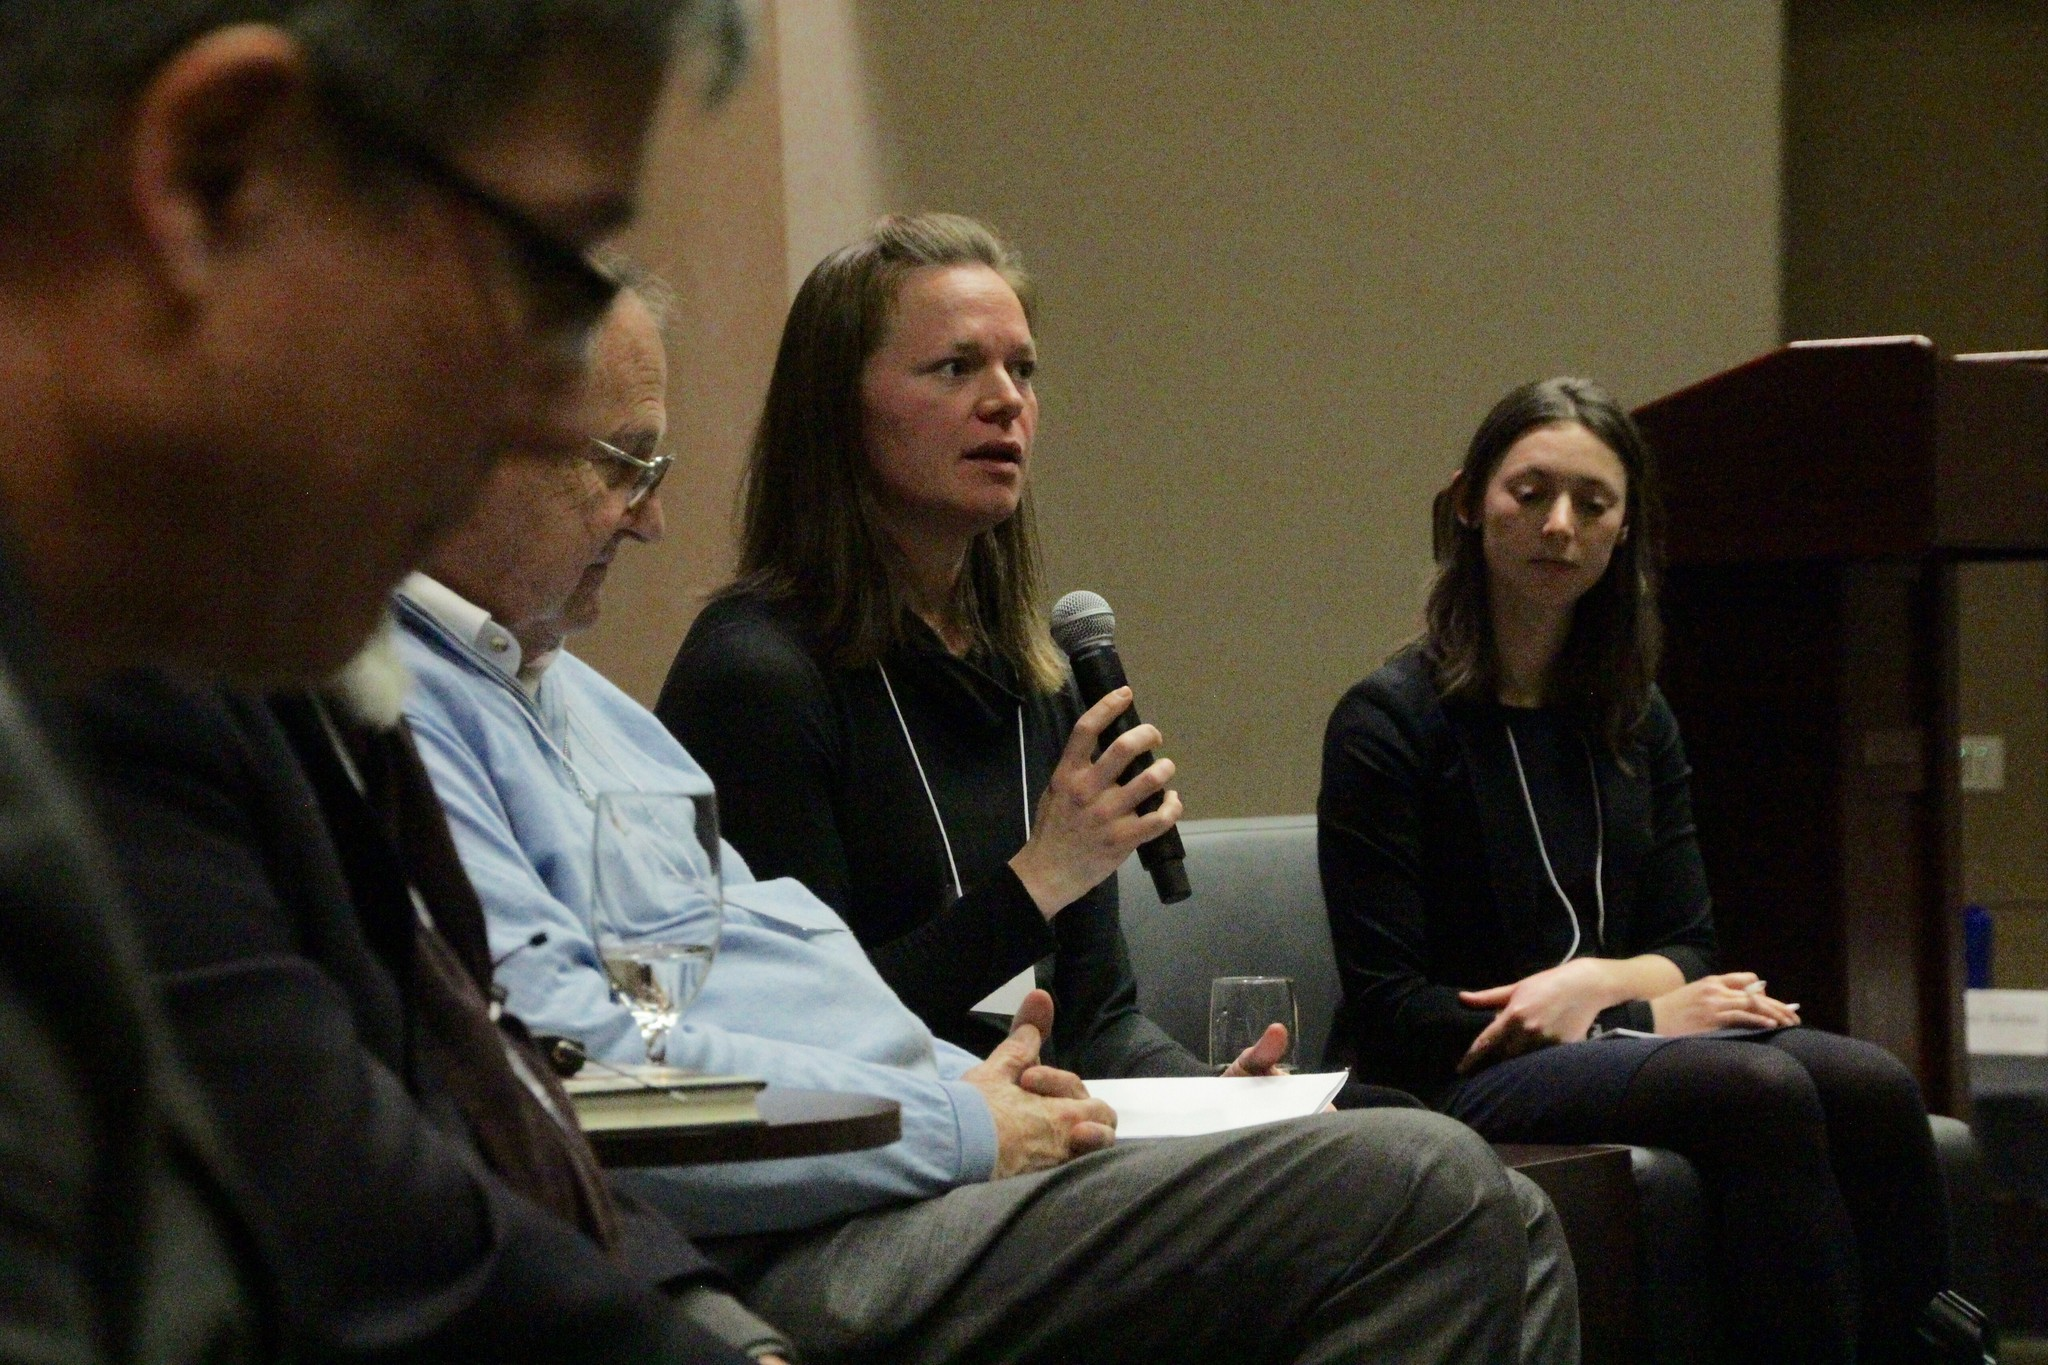 Alissa Cordner of Whitman College, center, answers an audience question.